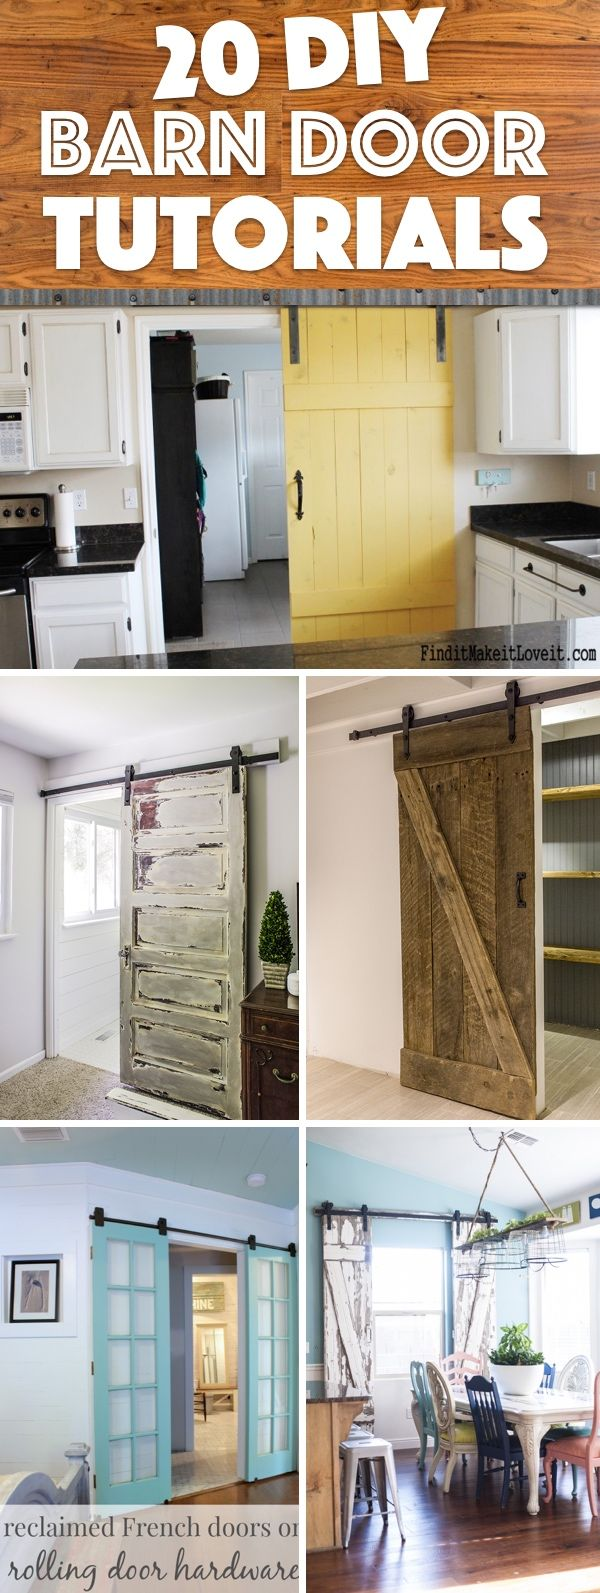 17 best images about diy decorating on pinterest miss mustard cute diy projects 20 diy barn door tutorials super easy to follow